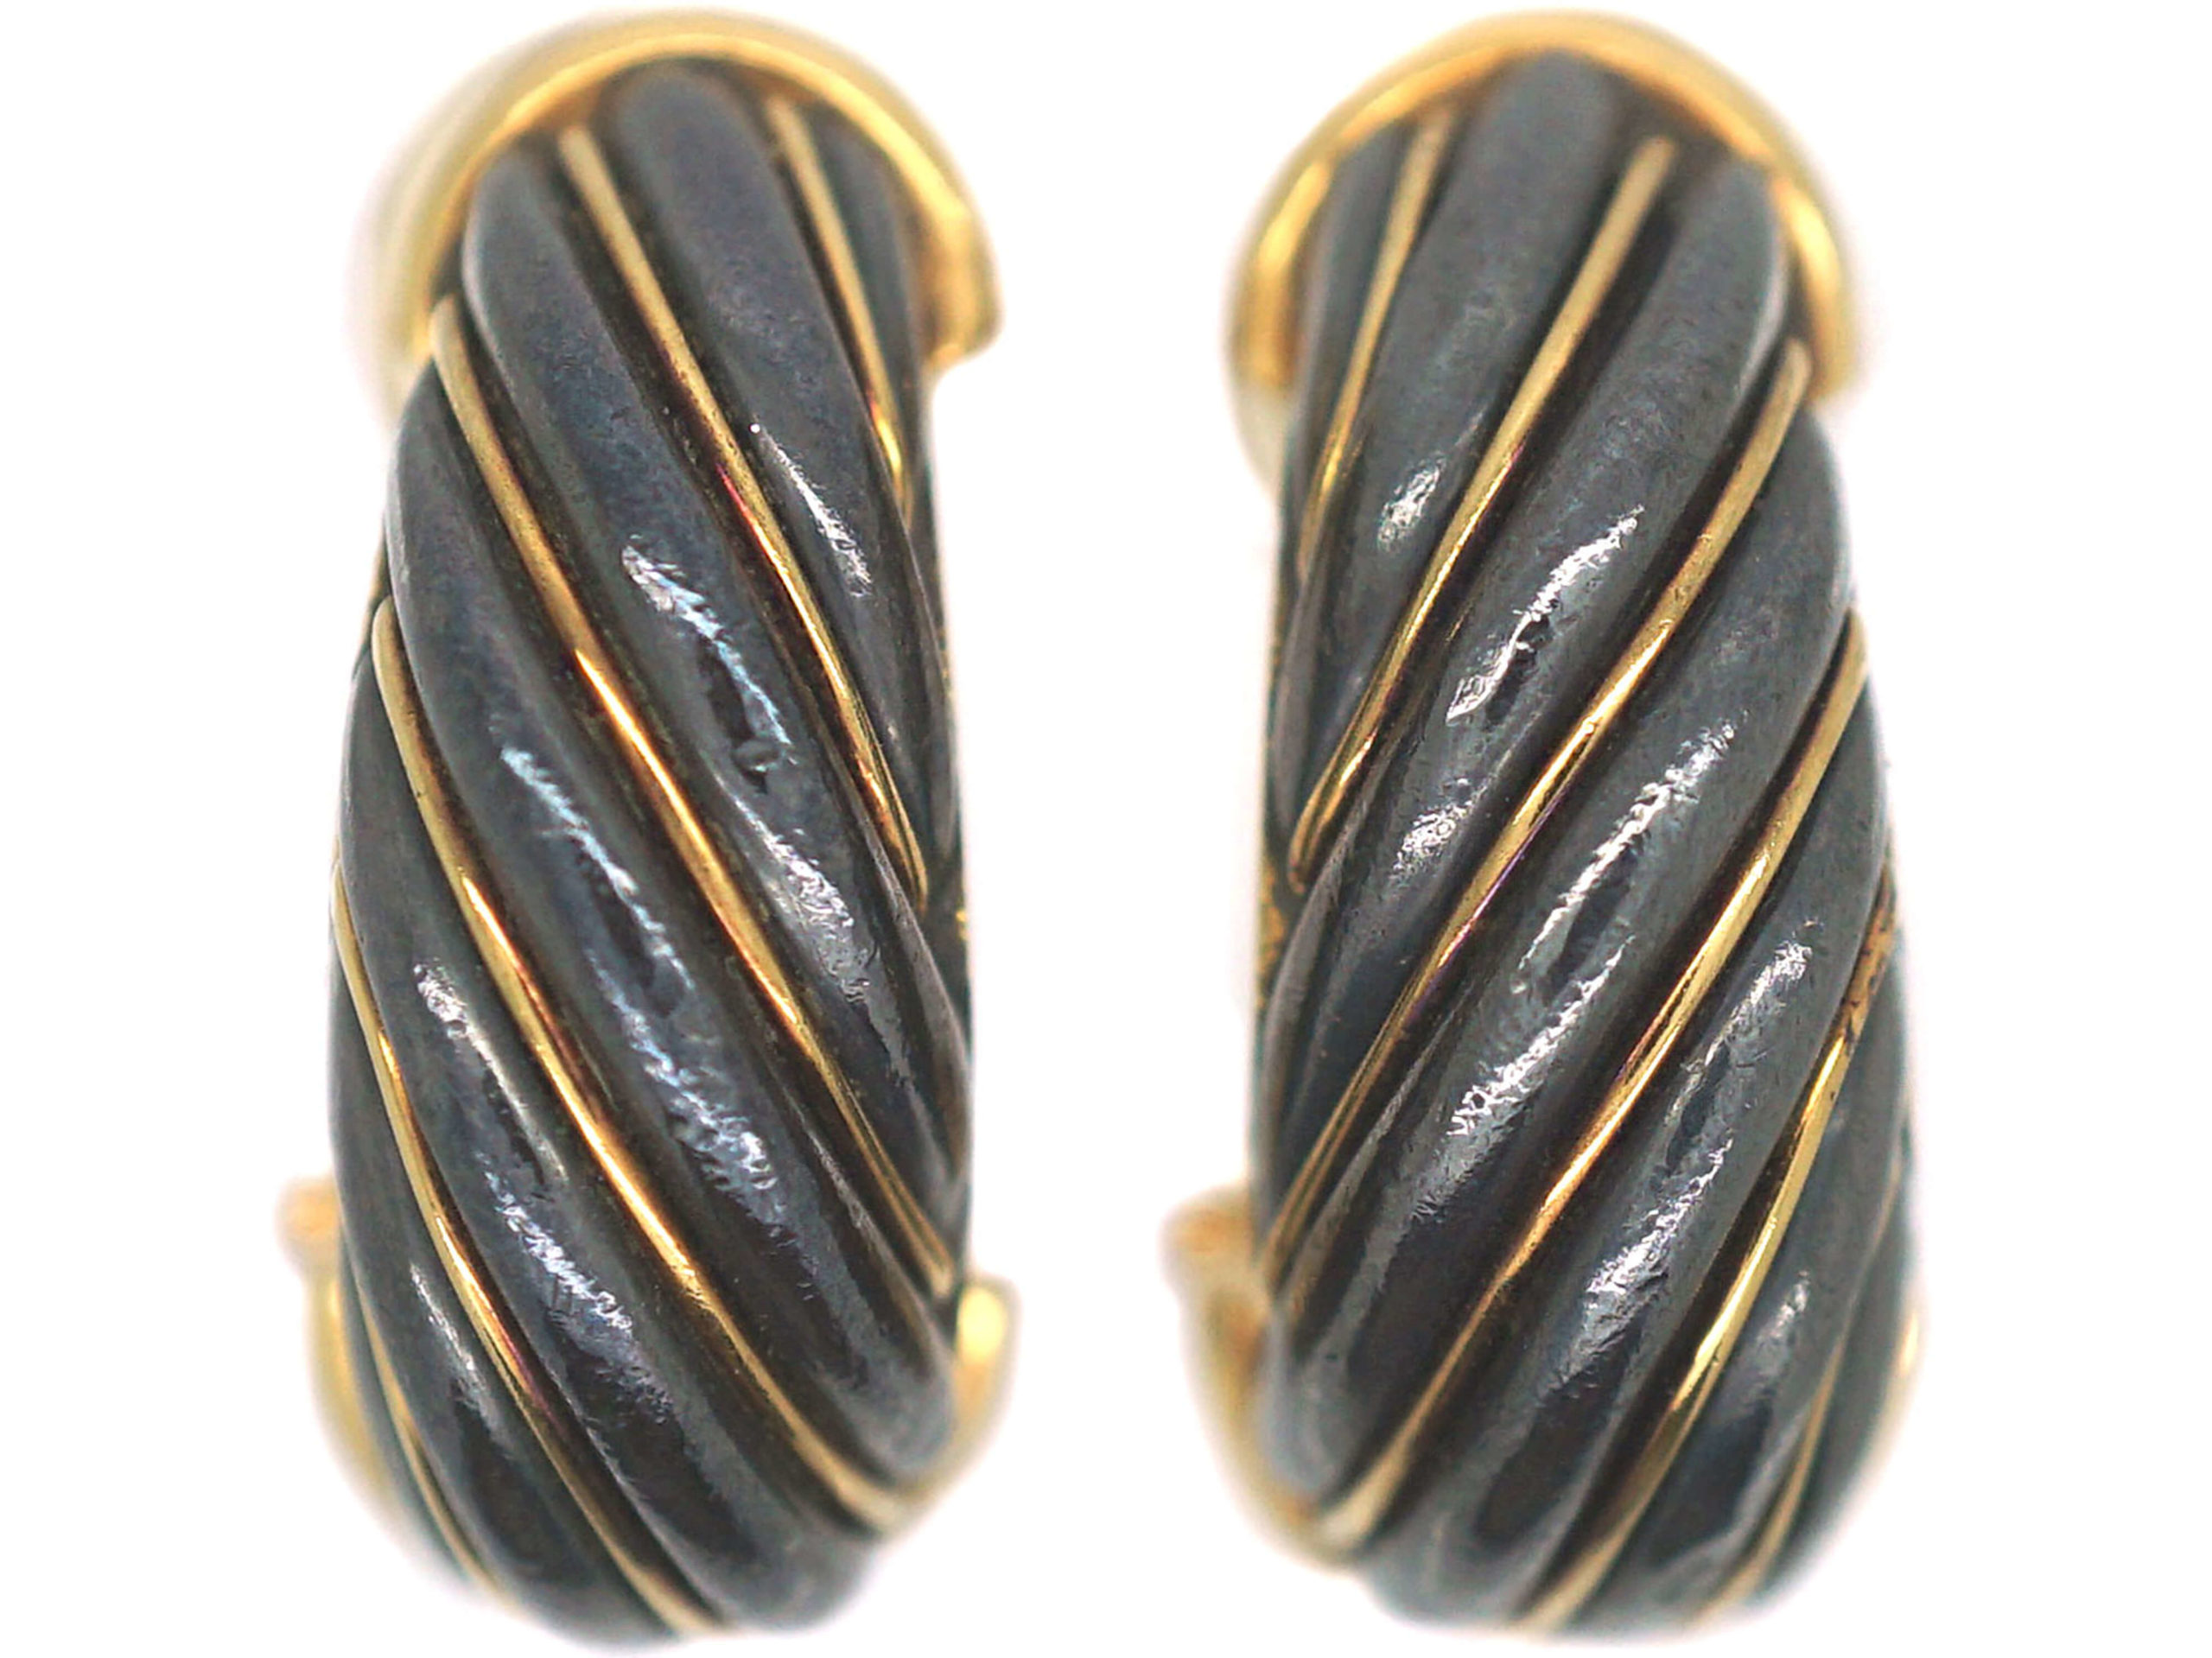 French 18ct Gold & Silverium Cartier Hoop Clip On Earrings in Original Cartier Case